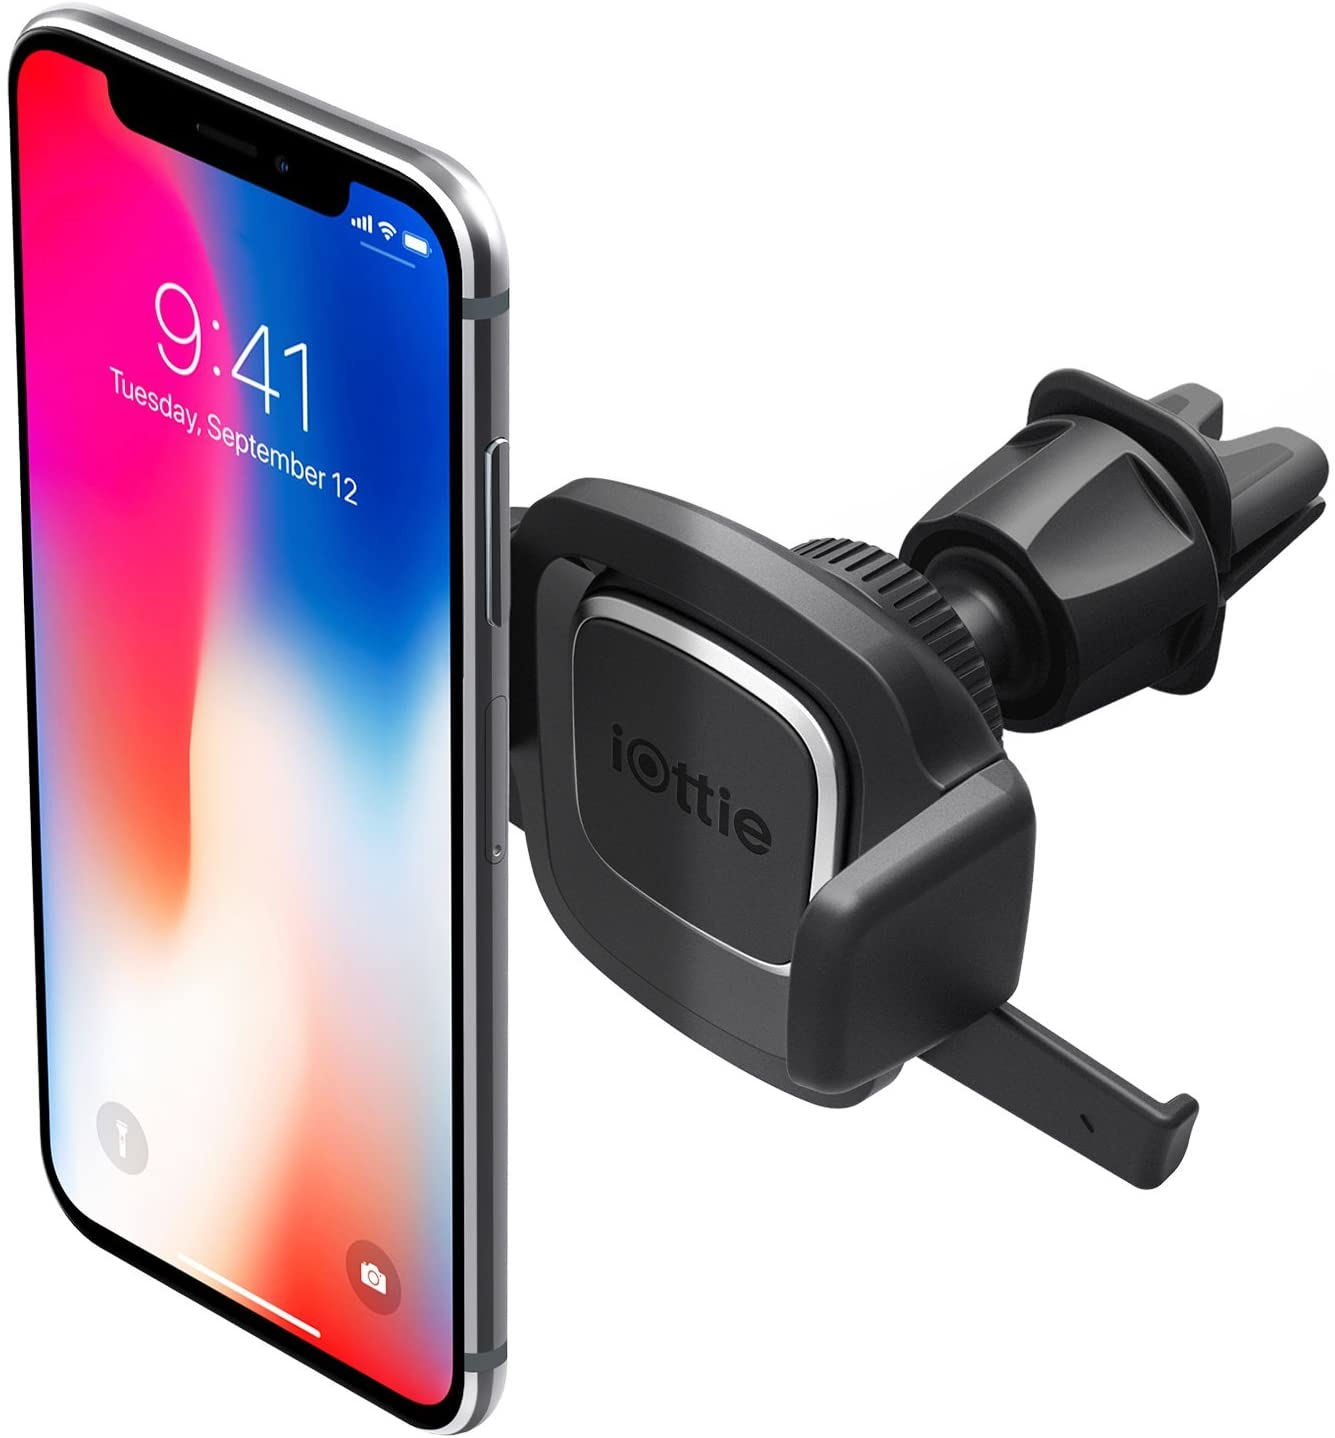 Samsung Galaxy S9 S8 Edge S7 S6 Note 9 /& Other Smartphone iOttie Easy One Touch 4 Dashboard /& Windshield Car Phone Mount Holder for iPhone Xs Max R 8 Plus 7 6s SE Renewed